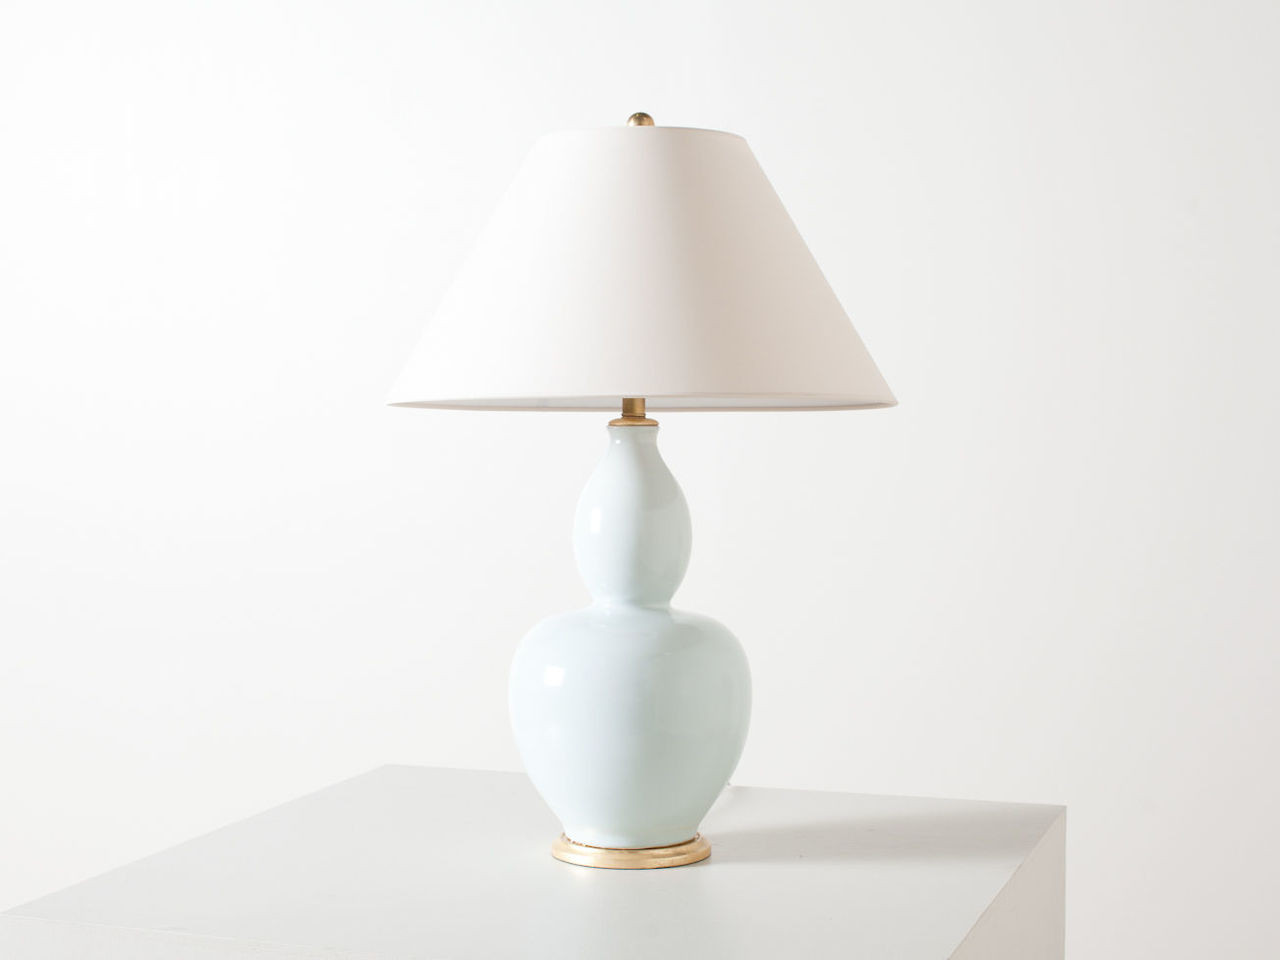 Yue Double Gourd Table Lamp R E V I V A L